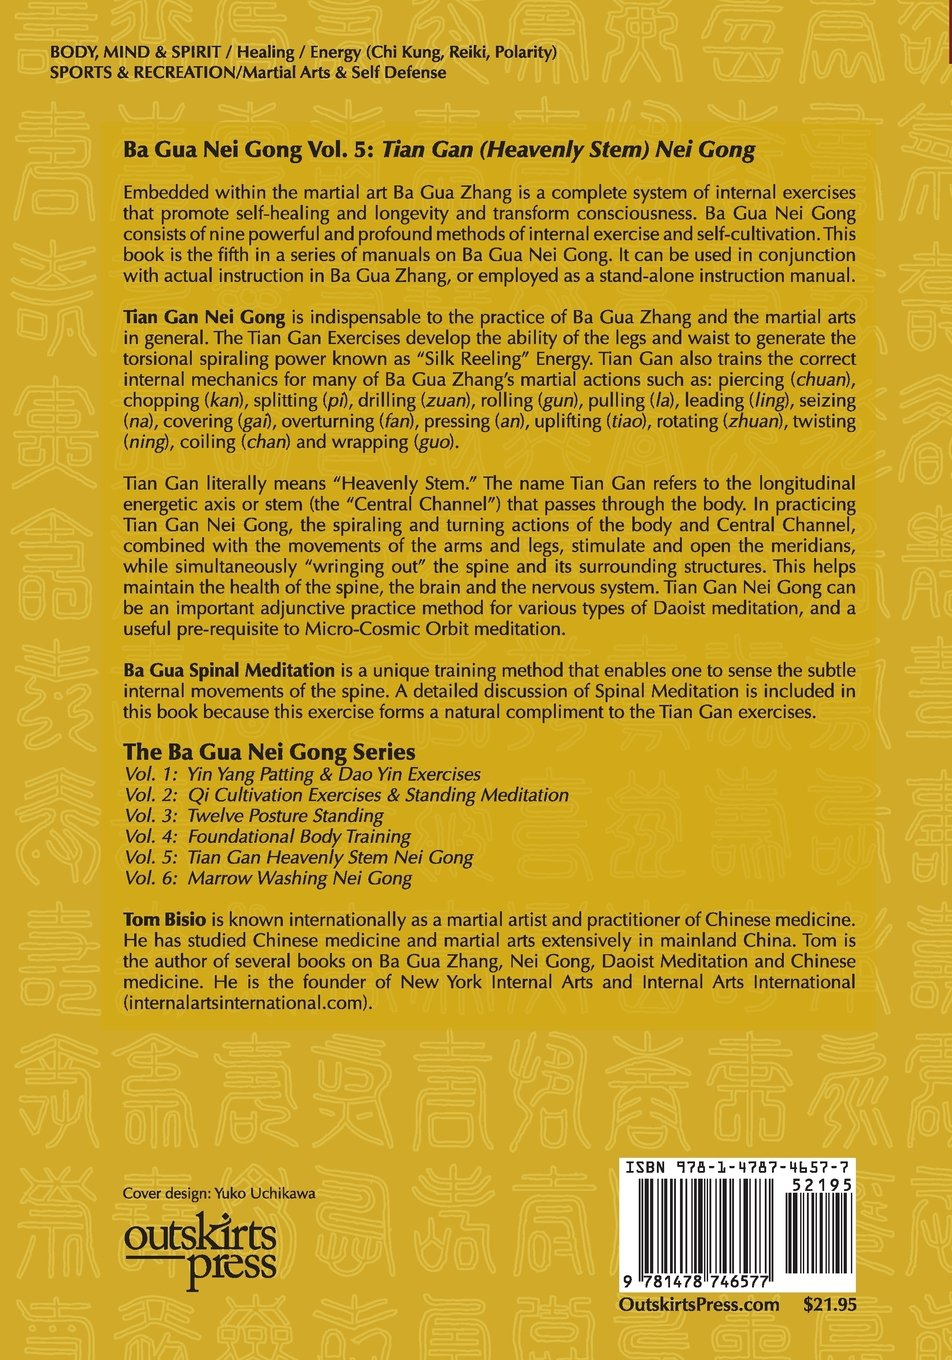 Ba Gua Nei Gong Volume 5: Tian Gan Heavenly Stem Nei Gong: Tom Bisio:  9781478746577: Amazon.com: Books